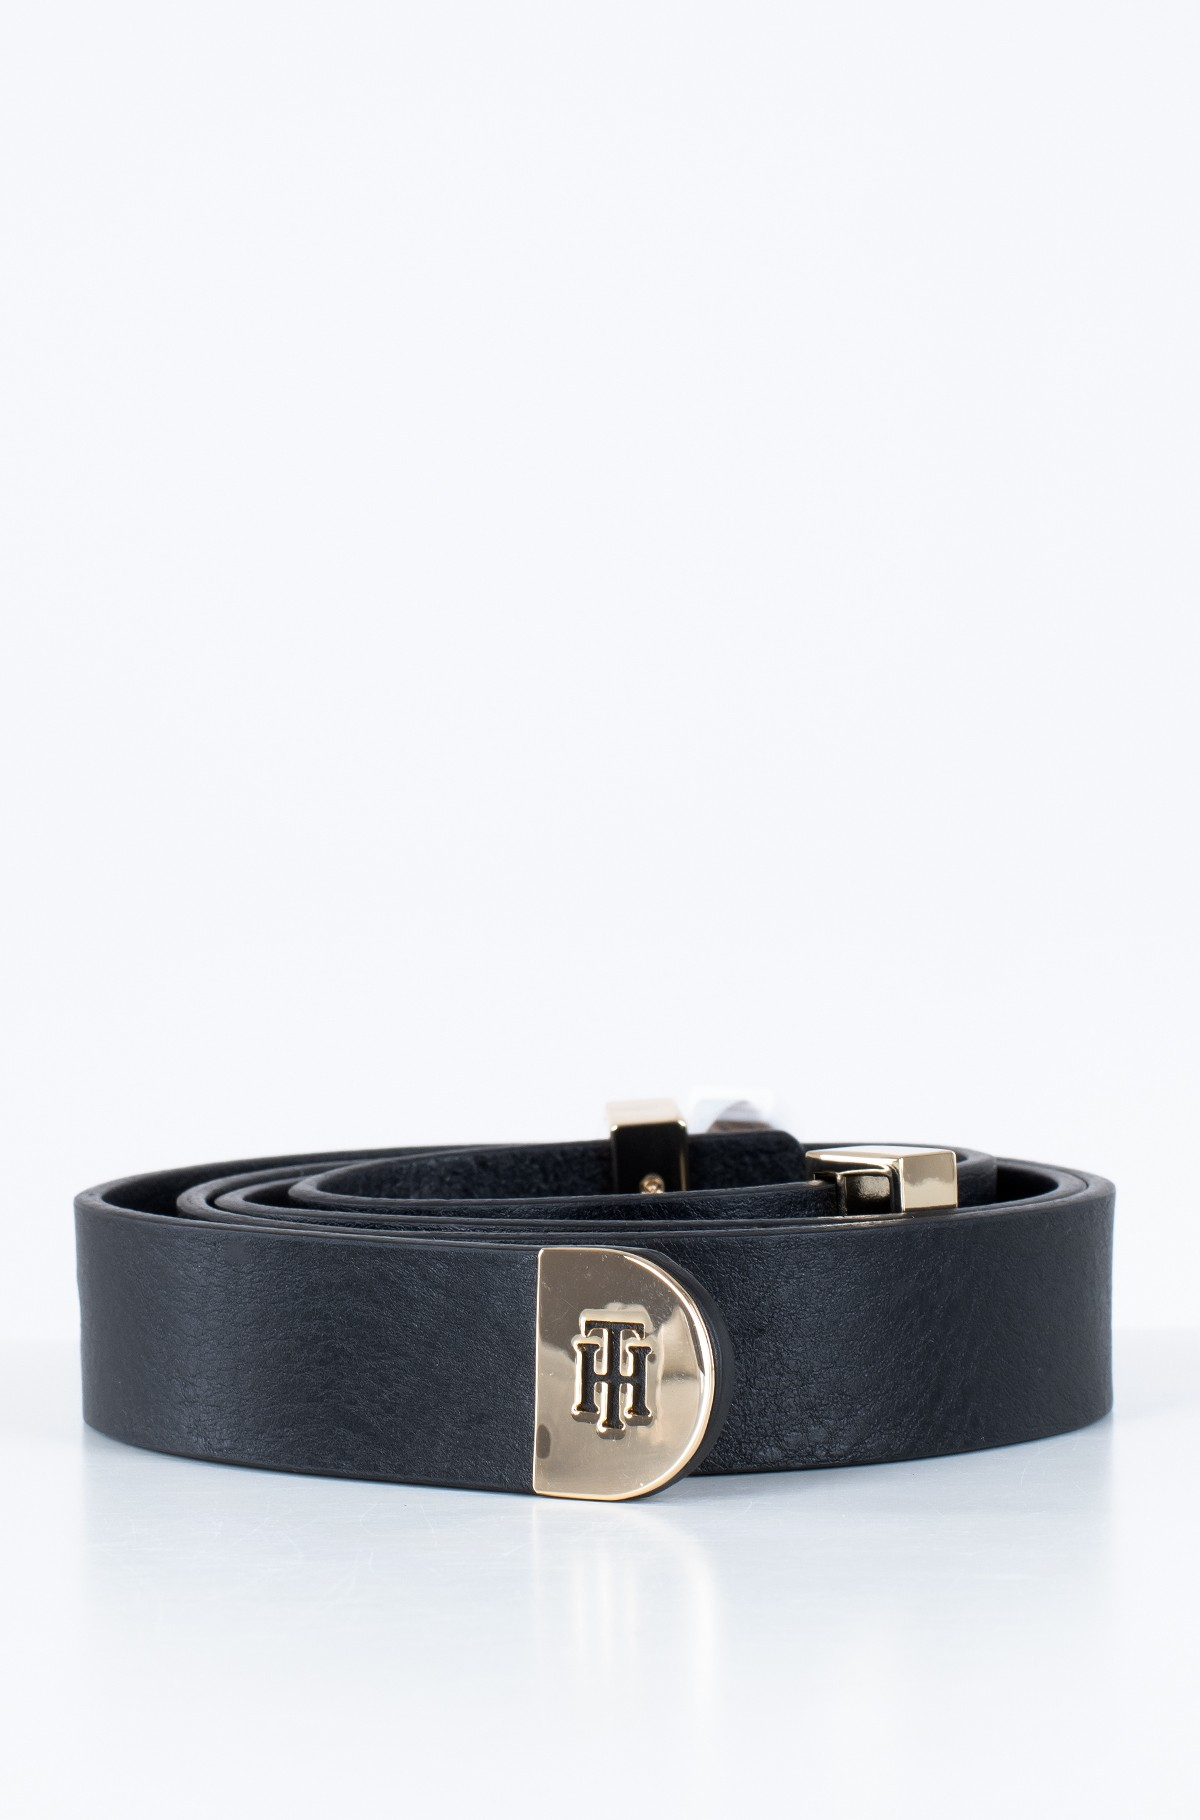 Josta  MODERN HARDWARE BELT 2.5-full-1